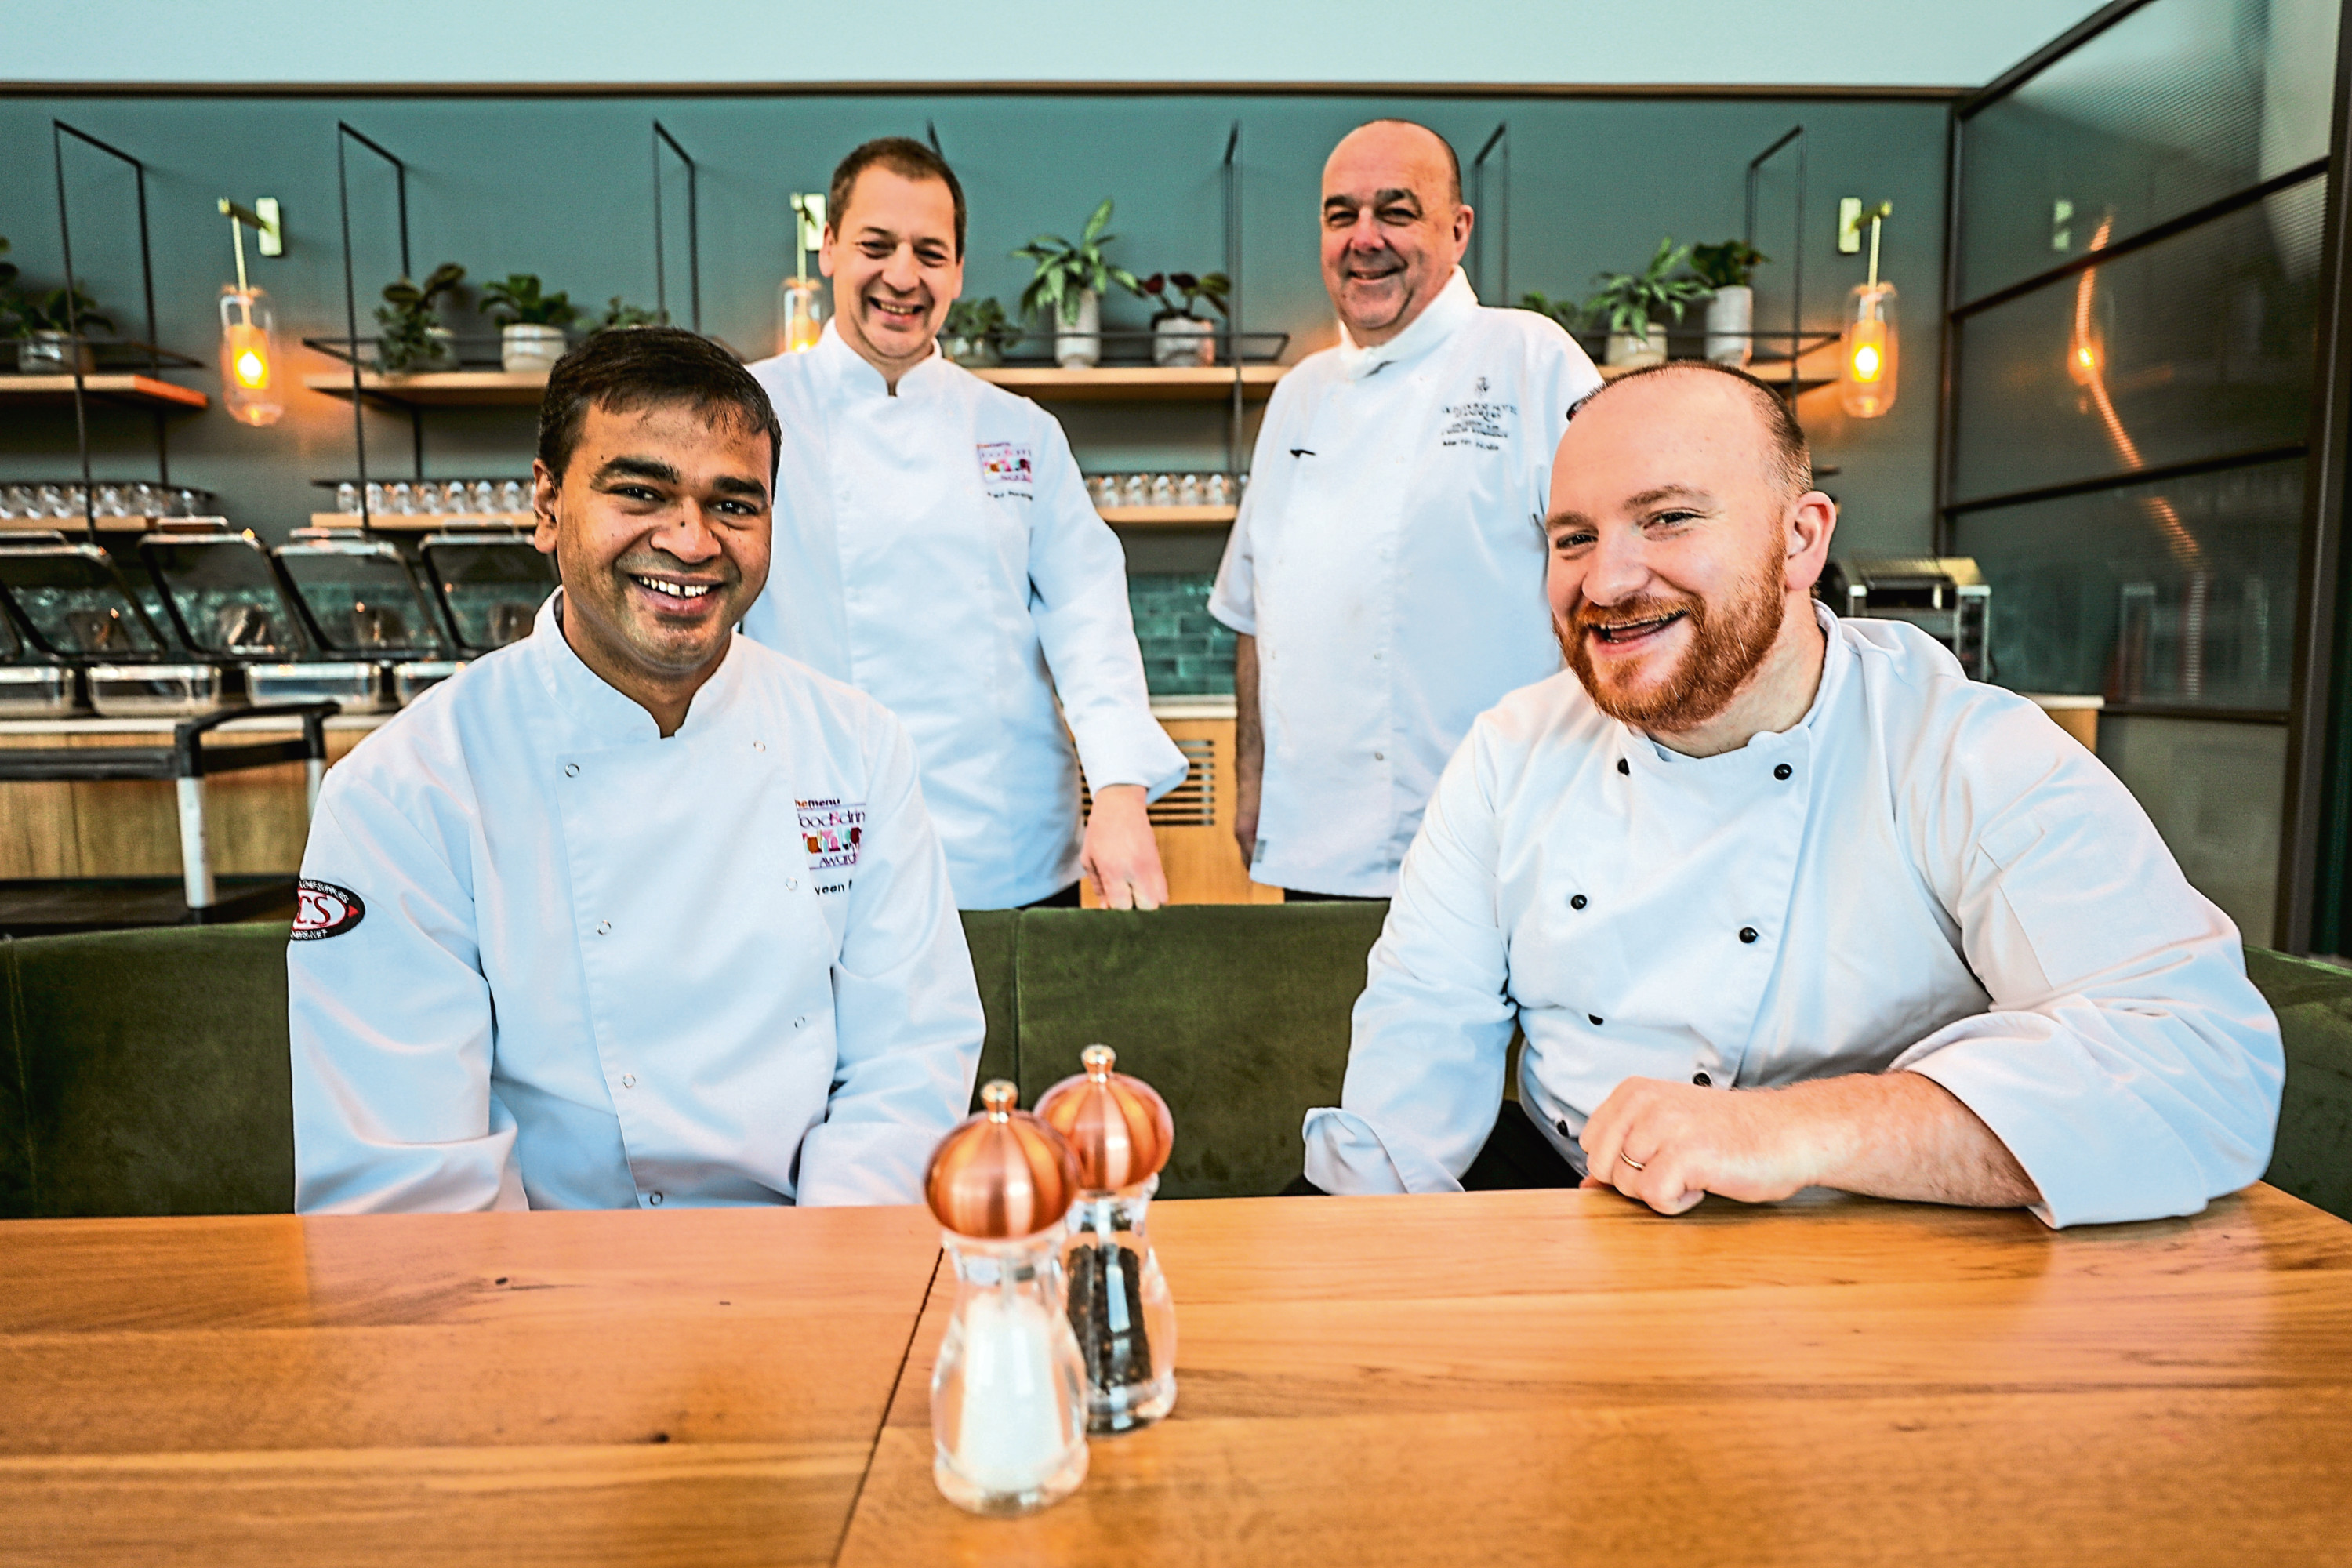 Four of the chefs who will be cooking up a culinary storm for The Menu Food and Drink Awards 2020 at Dundee's Apex Hotel:  Praveen Kumar, Paul Newman, Martin Hollis and Graham Paulley.